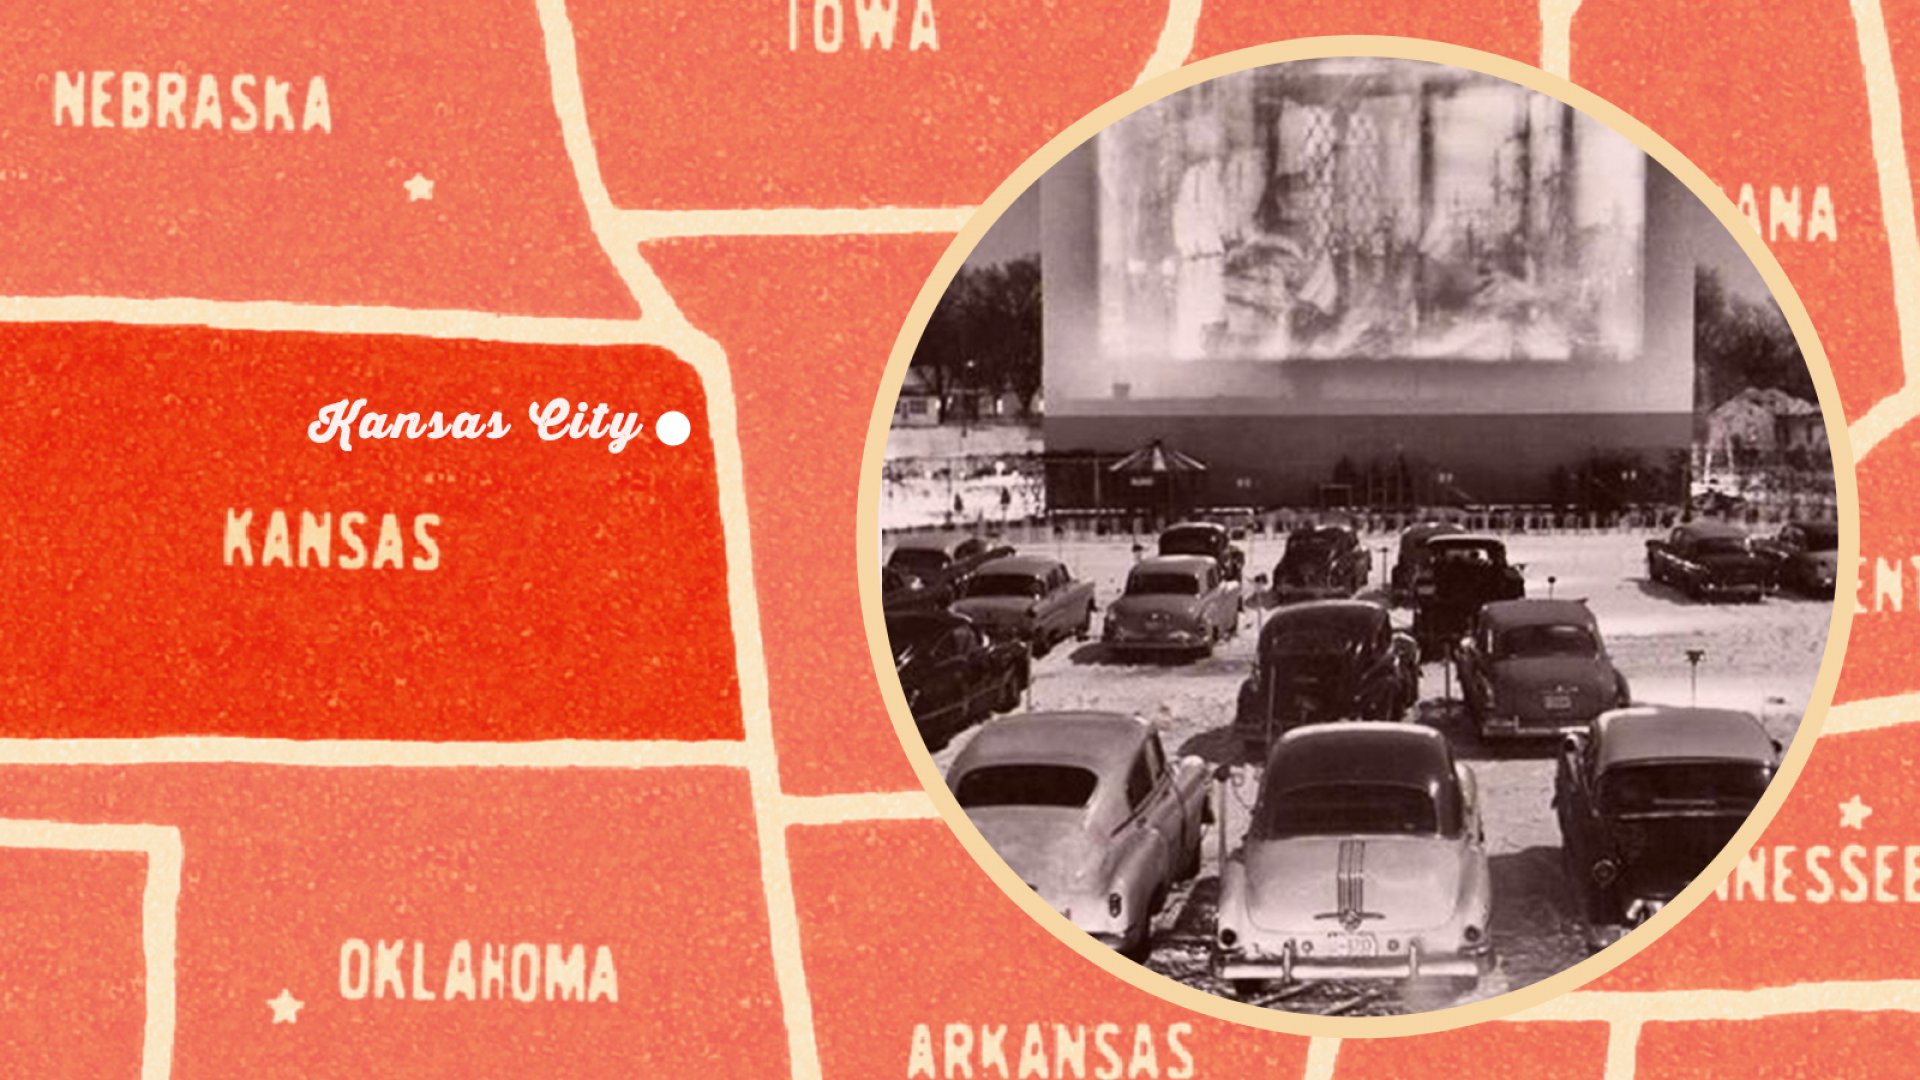 This Drive-In Theater Was Dying Until a $100,000 High-Tech Bet Turned Its Fortunes Around